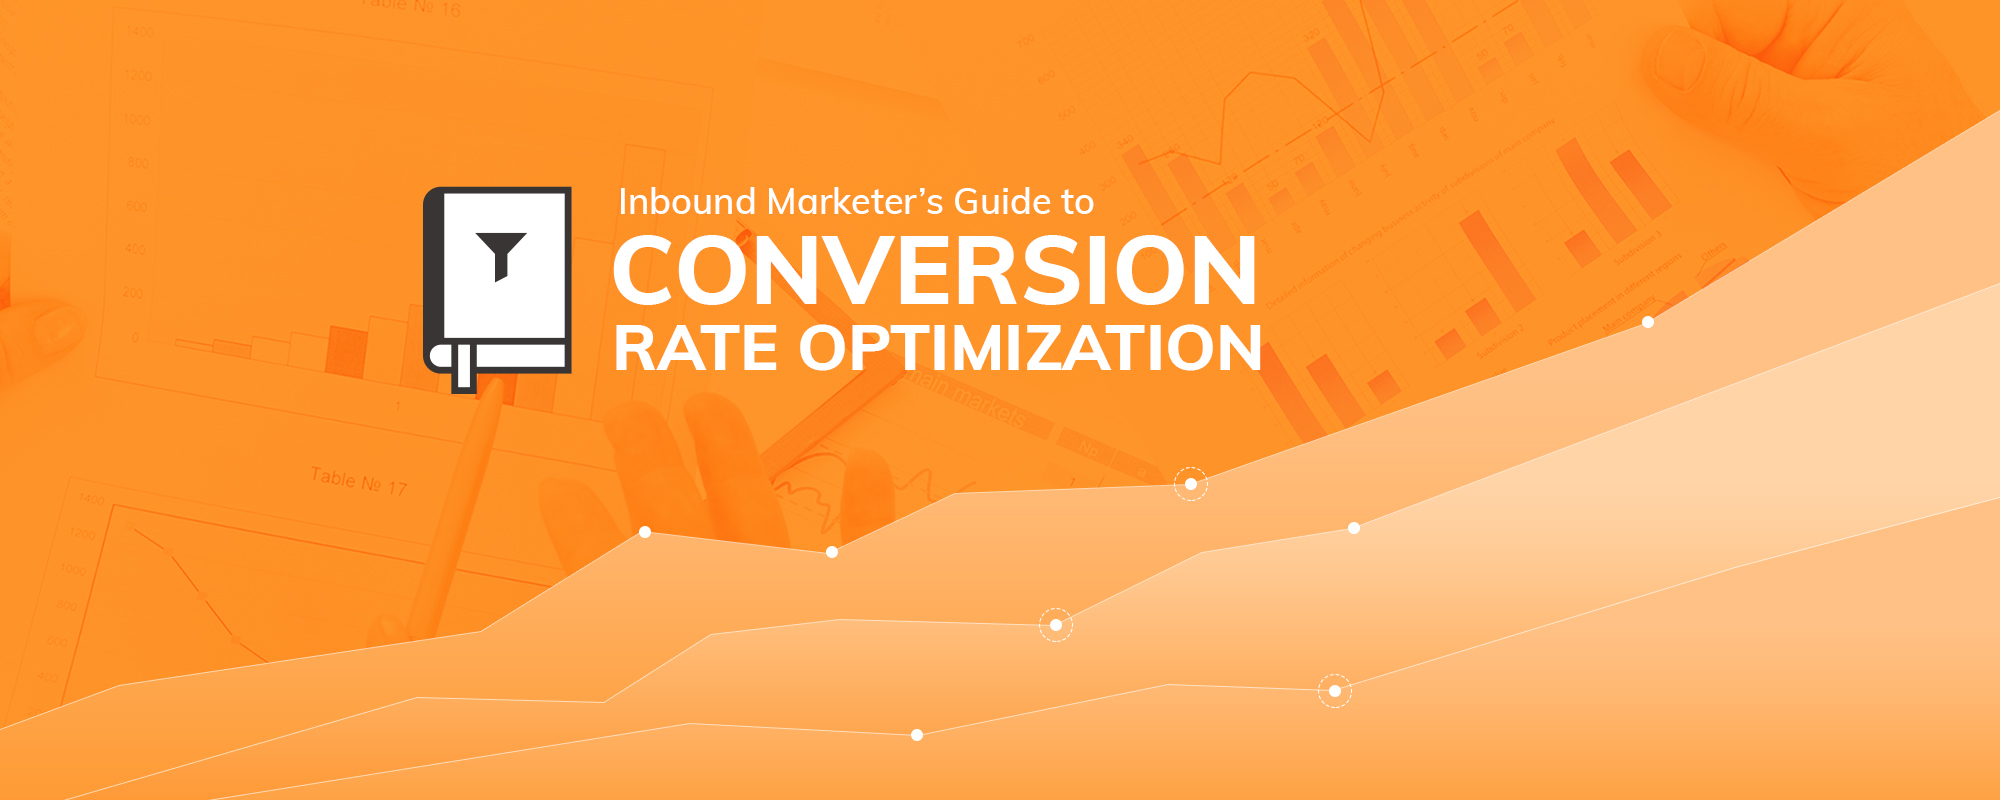 The Inbound Marketer's Guide to Conversion Rate Optimization